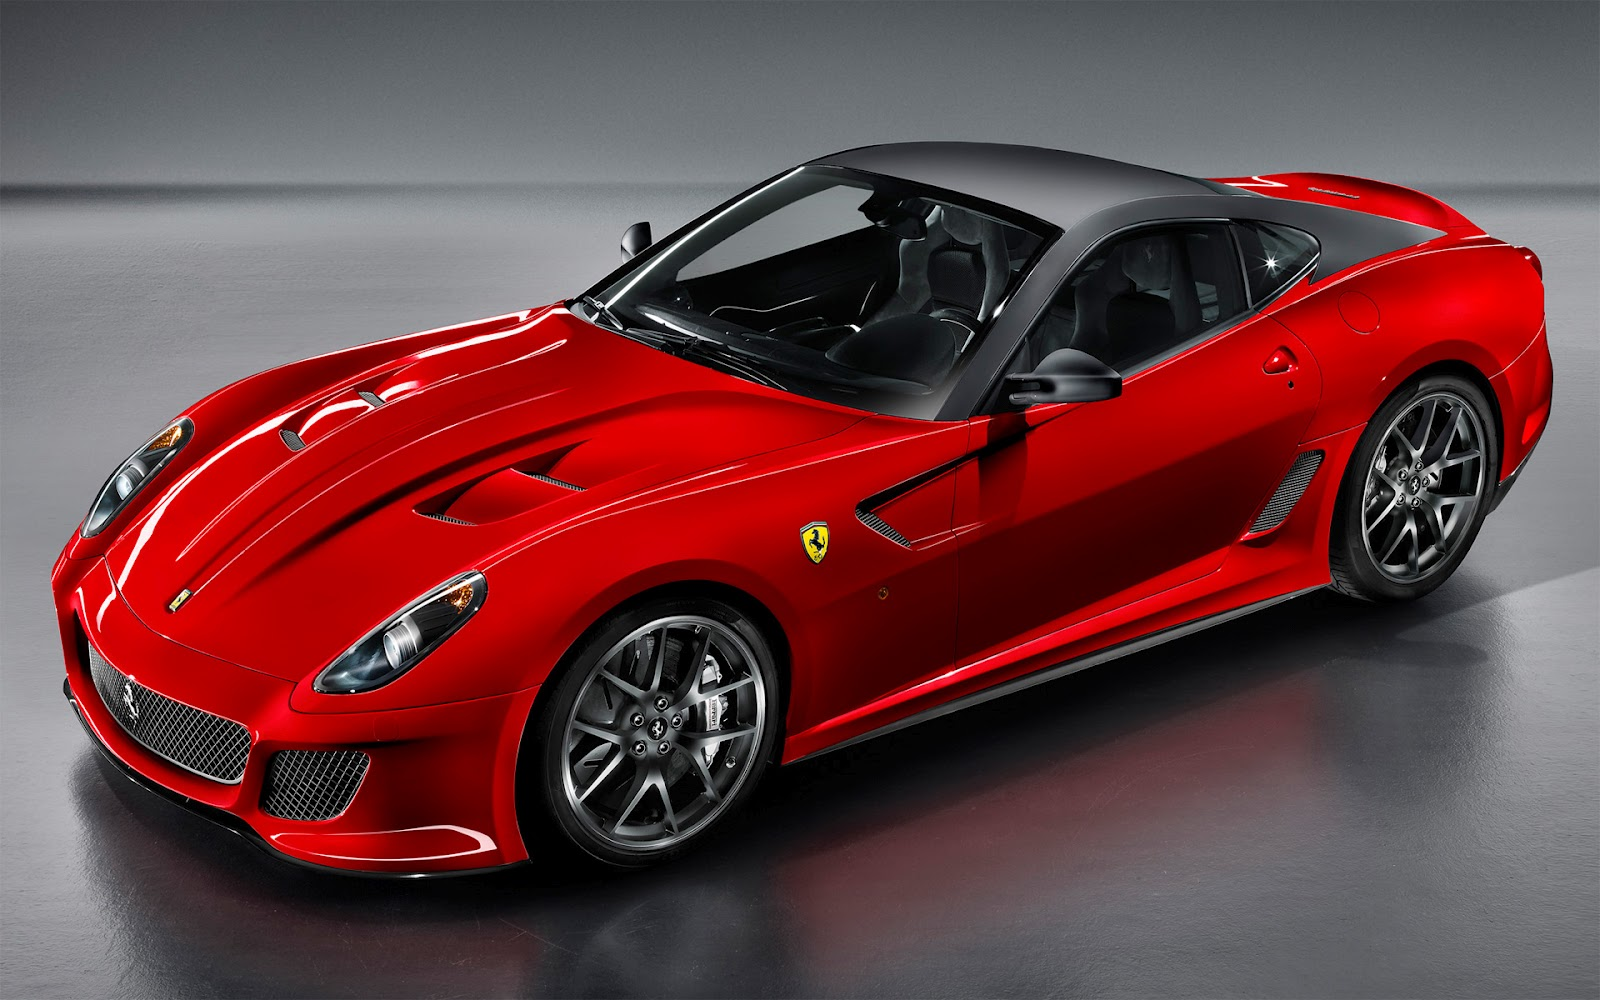 world_top_10_cars_full_hd_wallpapers_free_download